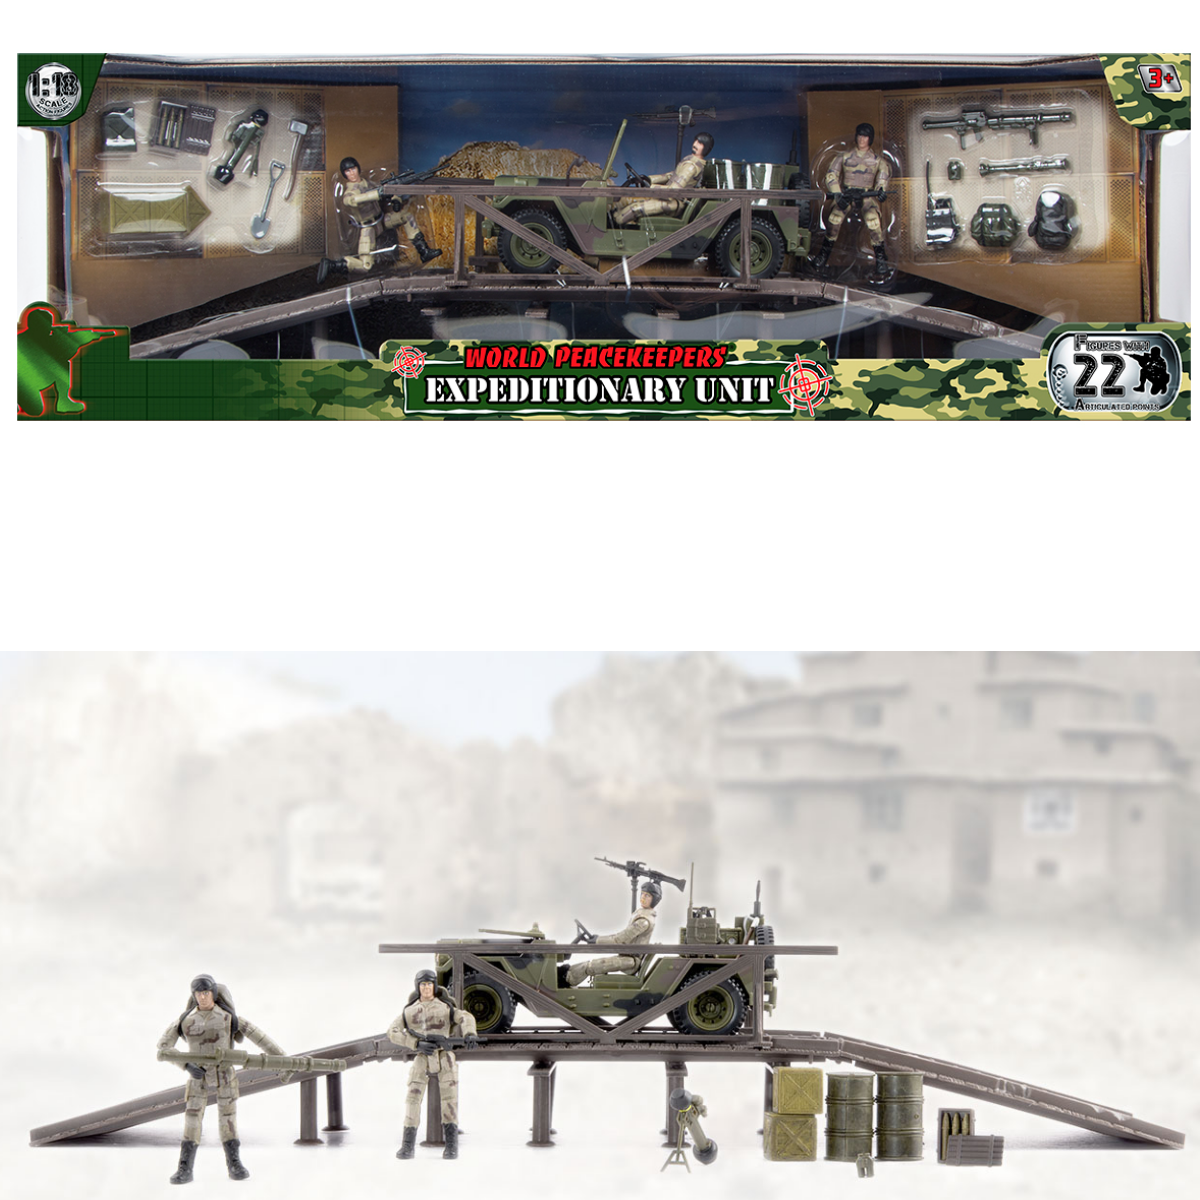 World Peacekeepers Expeditionary Unit -- Military Army Toy -- 1:18 Scale